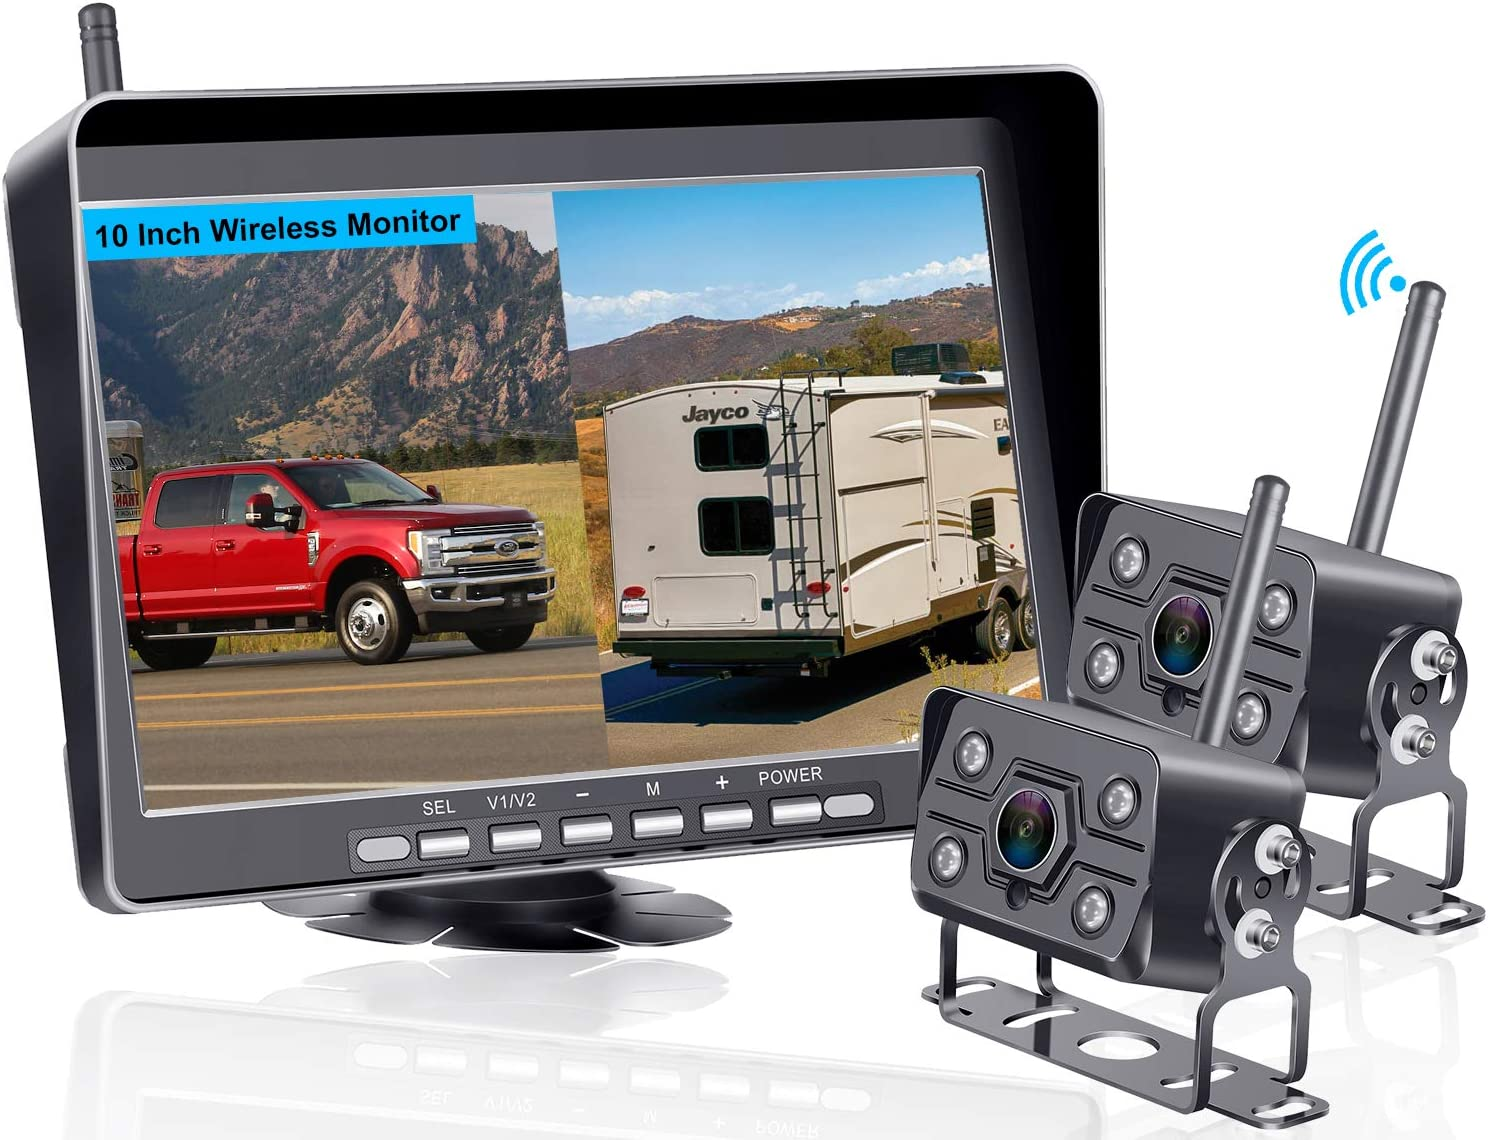 AMTIFO FHD 1080P 10'' Monitor RV Wireless Dual Backup Cameras for Trailers,5th Wheels,Motorhomes,Highway Monitoring Split/Quad Screen System with Recording Function,IP69K Waterproof - A10